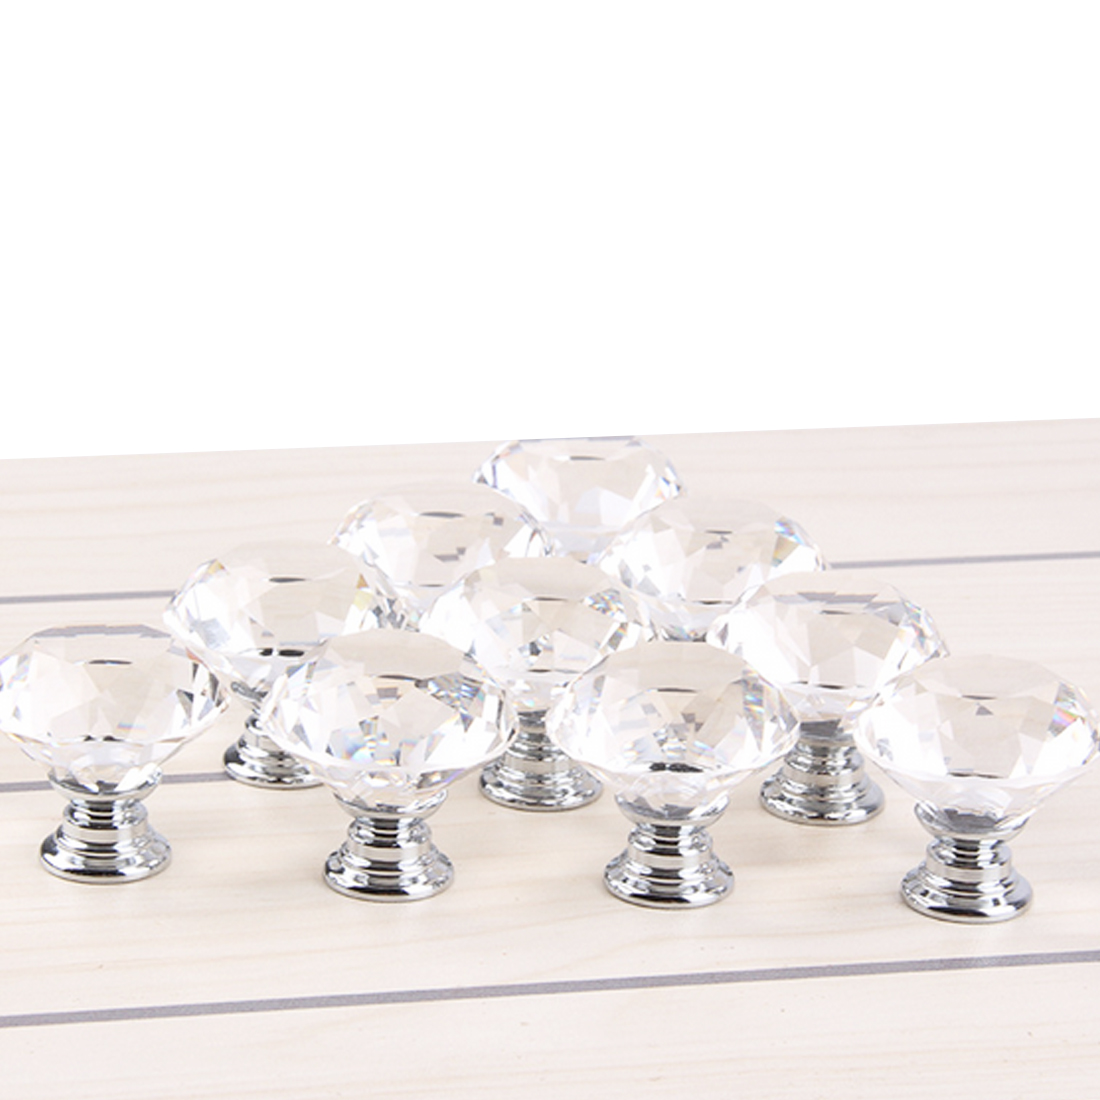 10 Pcs 30mm Diamond Shape Crystal Glass Door Handle Knob for furniture Drawer Cabinet Kitchen Pull Handles Knobs Wardrobe 10 pcs 30mm diamond shape crystal glass drawer cabinet knobs and pull handles kitchen door wardrobe hardware accessories